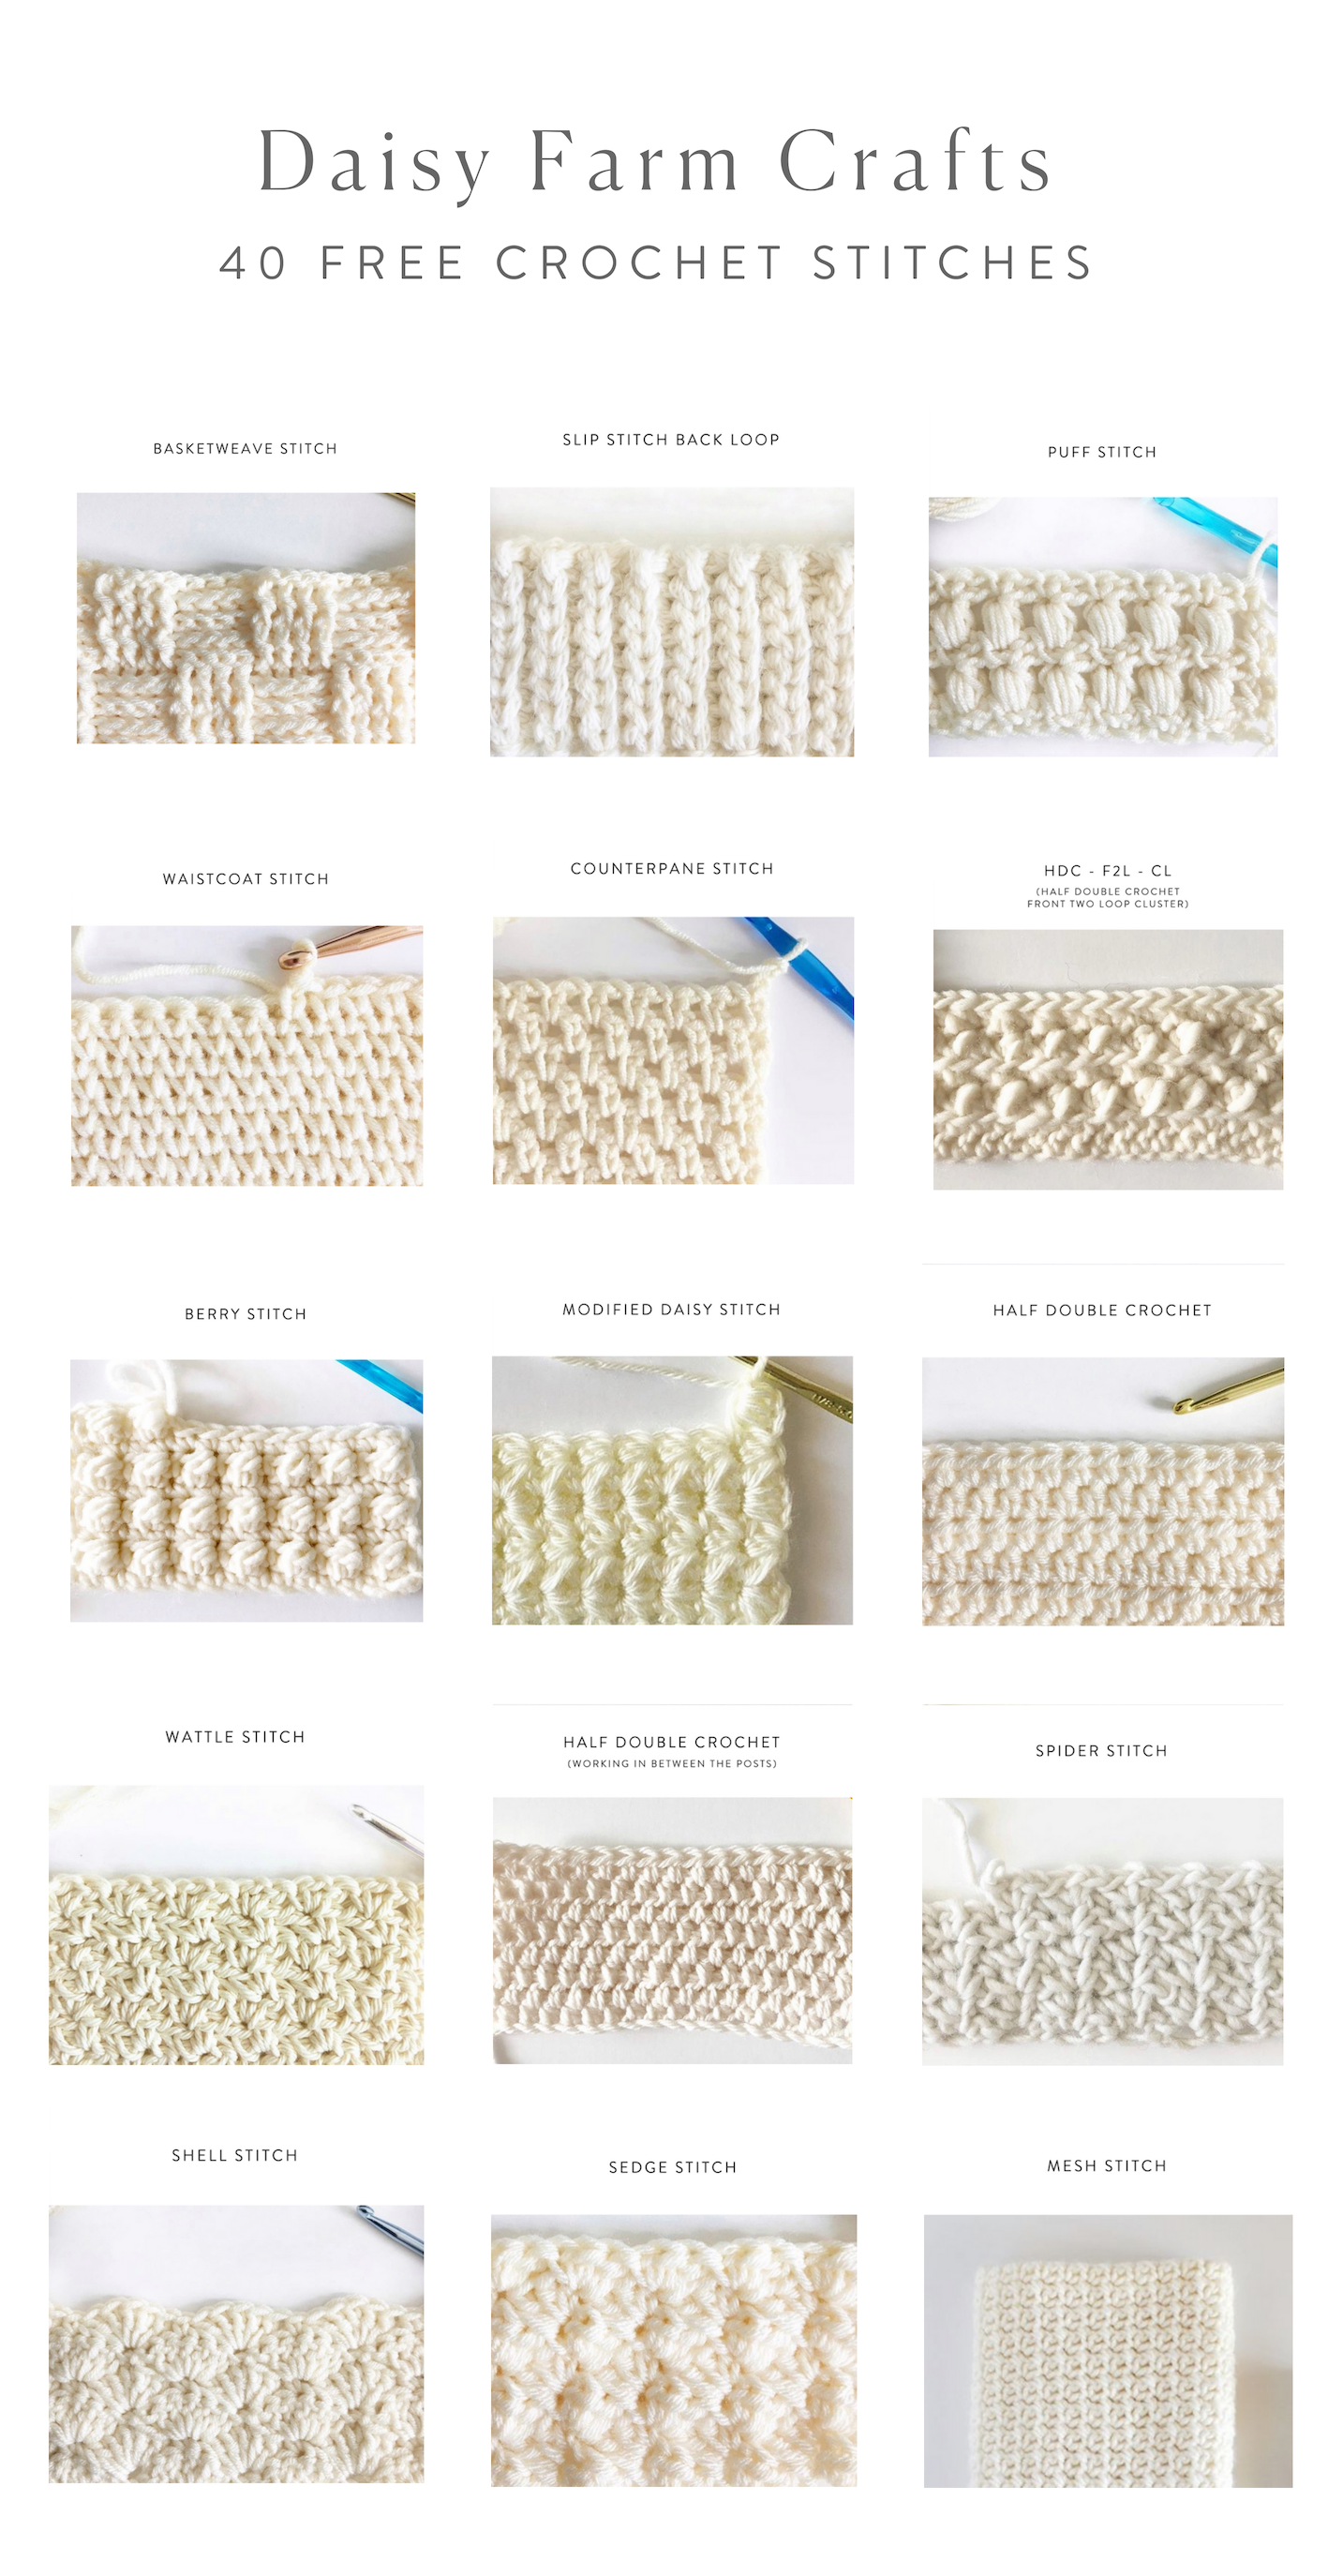 40 Free Crochet Stitches From Daisy Farm Crafts 40 Free Crochet Stitches from Daisy Farm Crafts Crochet Techniques crochet techniques